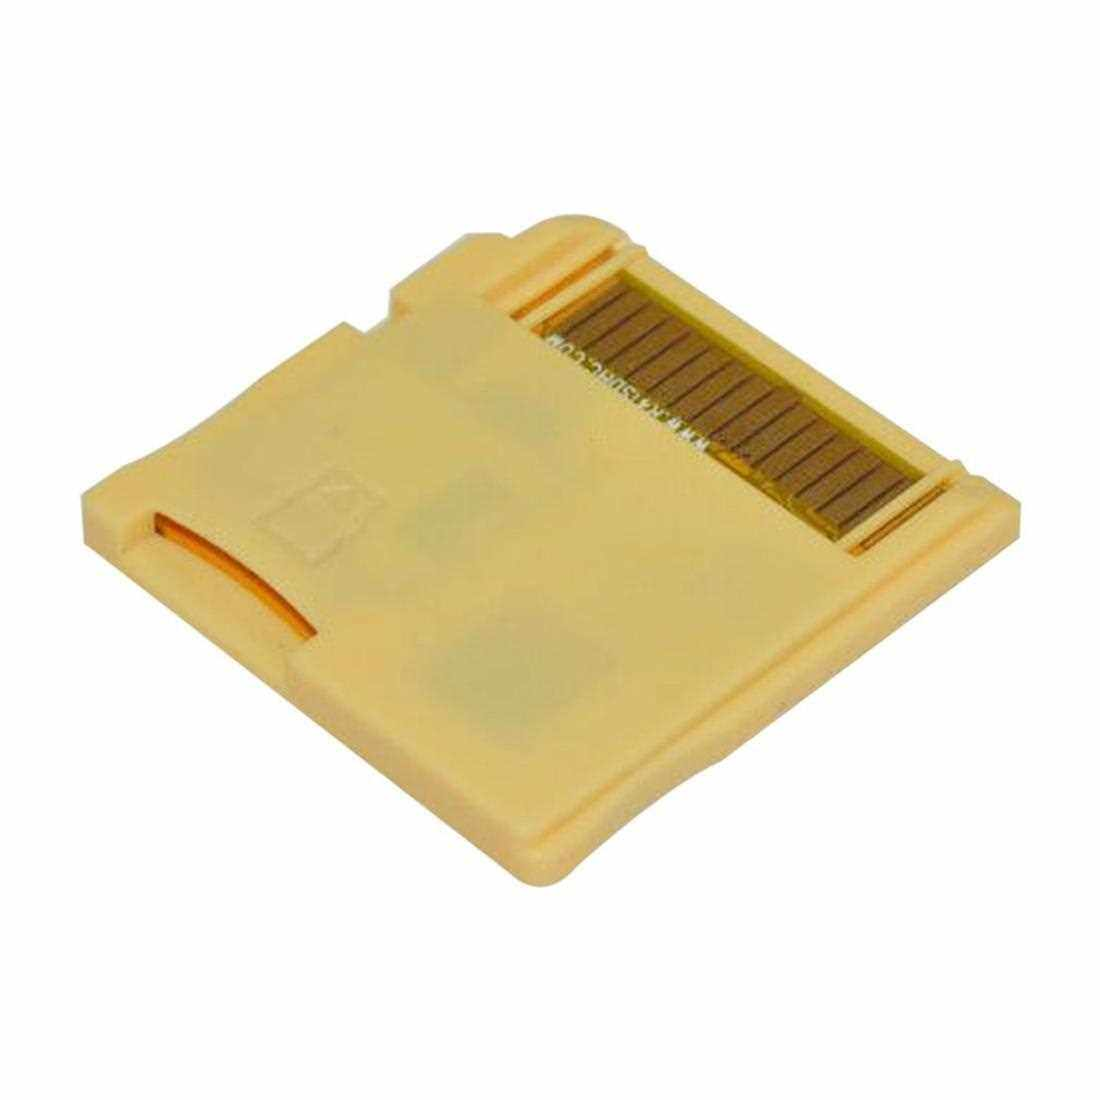 Wide Compatible R4 SDHC Micro Secure Digital Memory Card Adapter For DS (Golden)